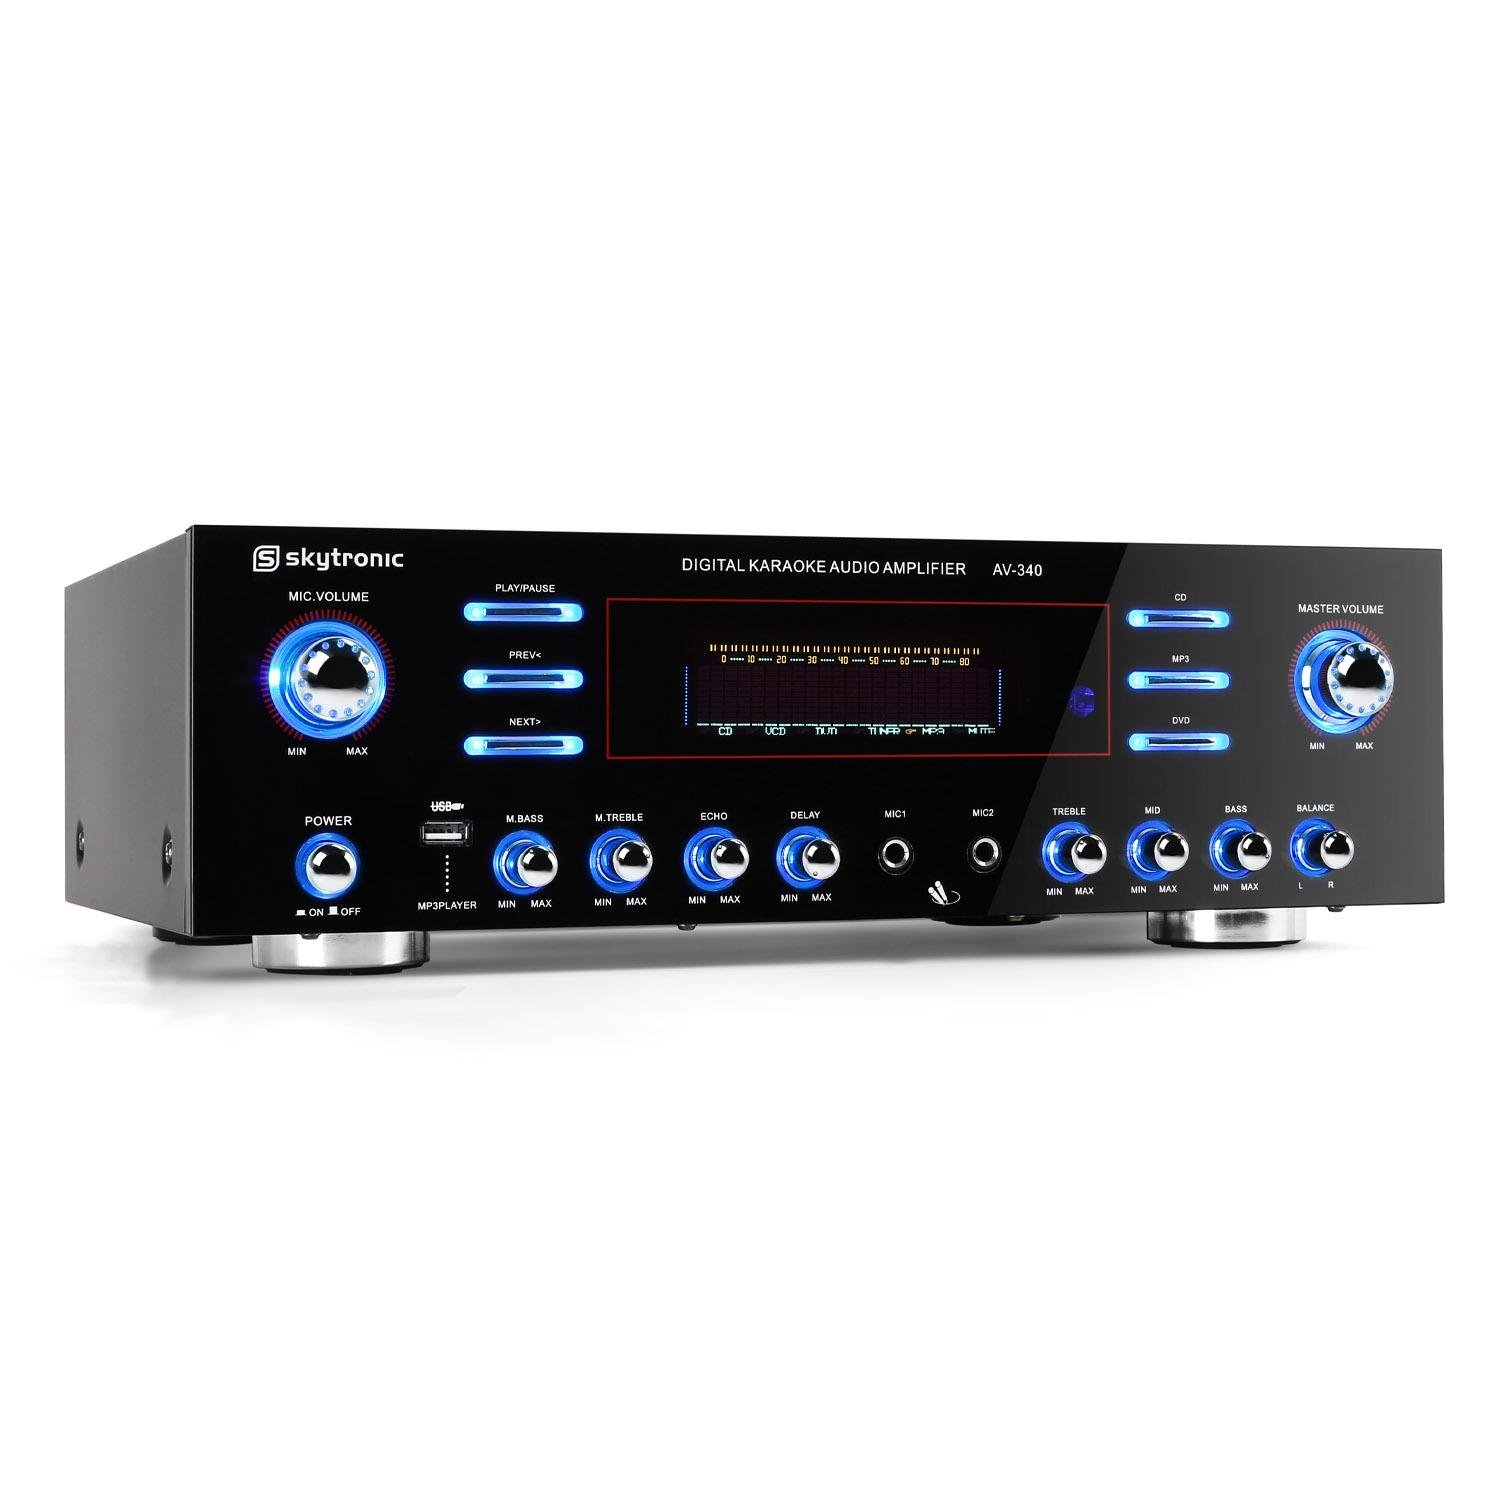 Amplificateur Surround 5 CH HQ MP3 av-340 - Skytronic 103212